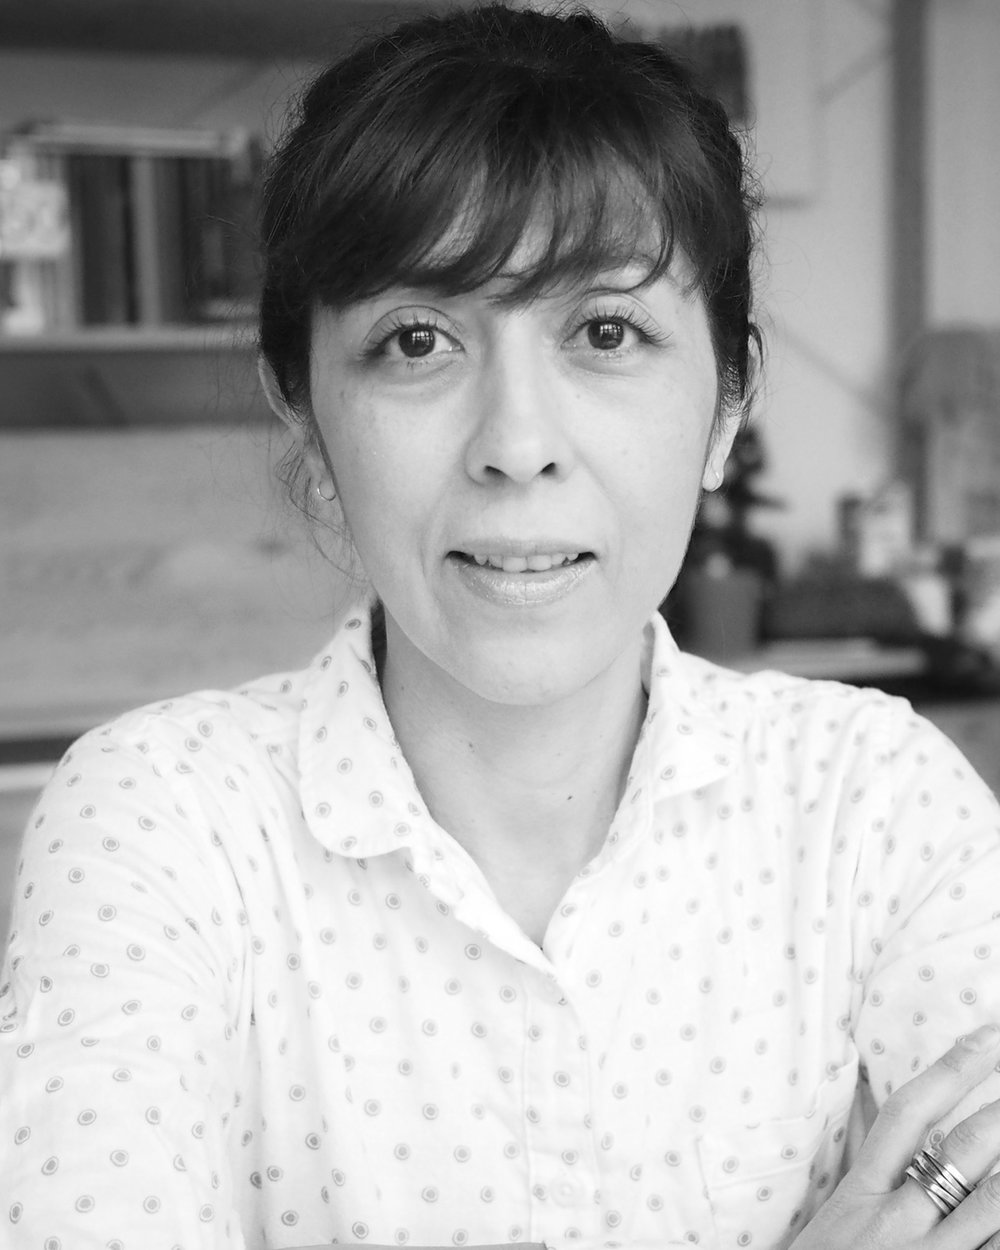 Originally from Mexico, Monica lives and works in the U.K. She studied Filmmaking, Performance Design and Documentary Photography.   Her photobook  Your Photos could be used by drug dealers  was acquired in 2014 for artist book collections at the Museum of Modern Art in New York, The Yale University Gallery and the Joan Flasch Collection at the Arts Institute of Chicago. In 2017 she obtained the Magnum Graduate Photographer Award and The Photographers' Gallery Bar-Tur Photobook Award. Monica's last work  Possible Landscapes  is a peace-building participatory project for young people in post-conflict countries.  Link to TEDx Talk on Possible Landscapes:  https://www.youtube.com/watch?v=4yW3emga9TI